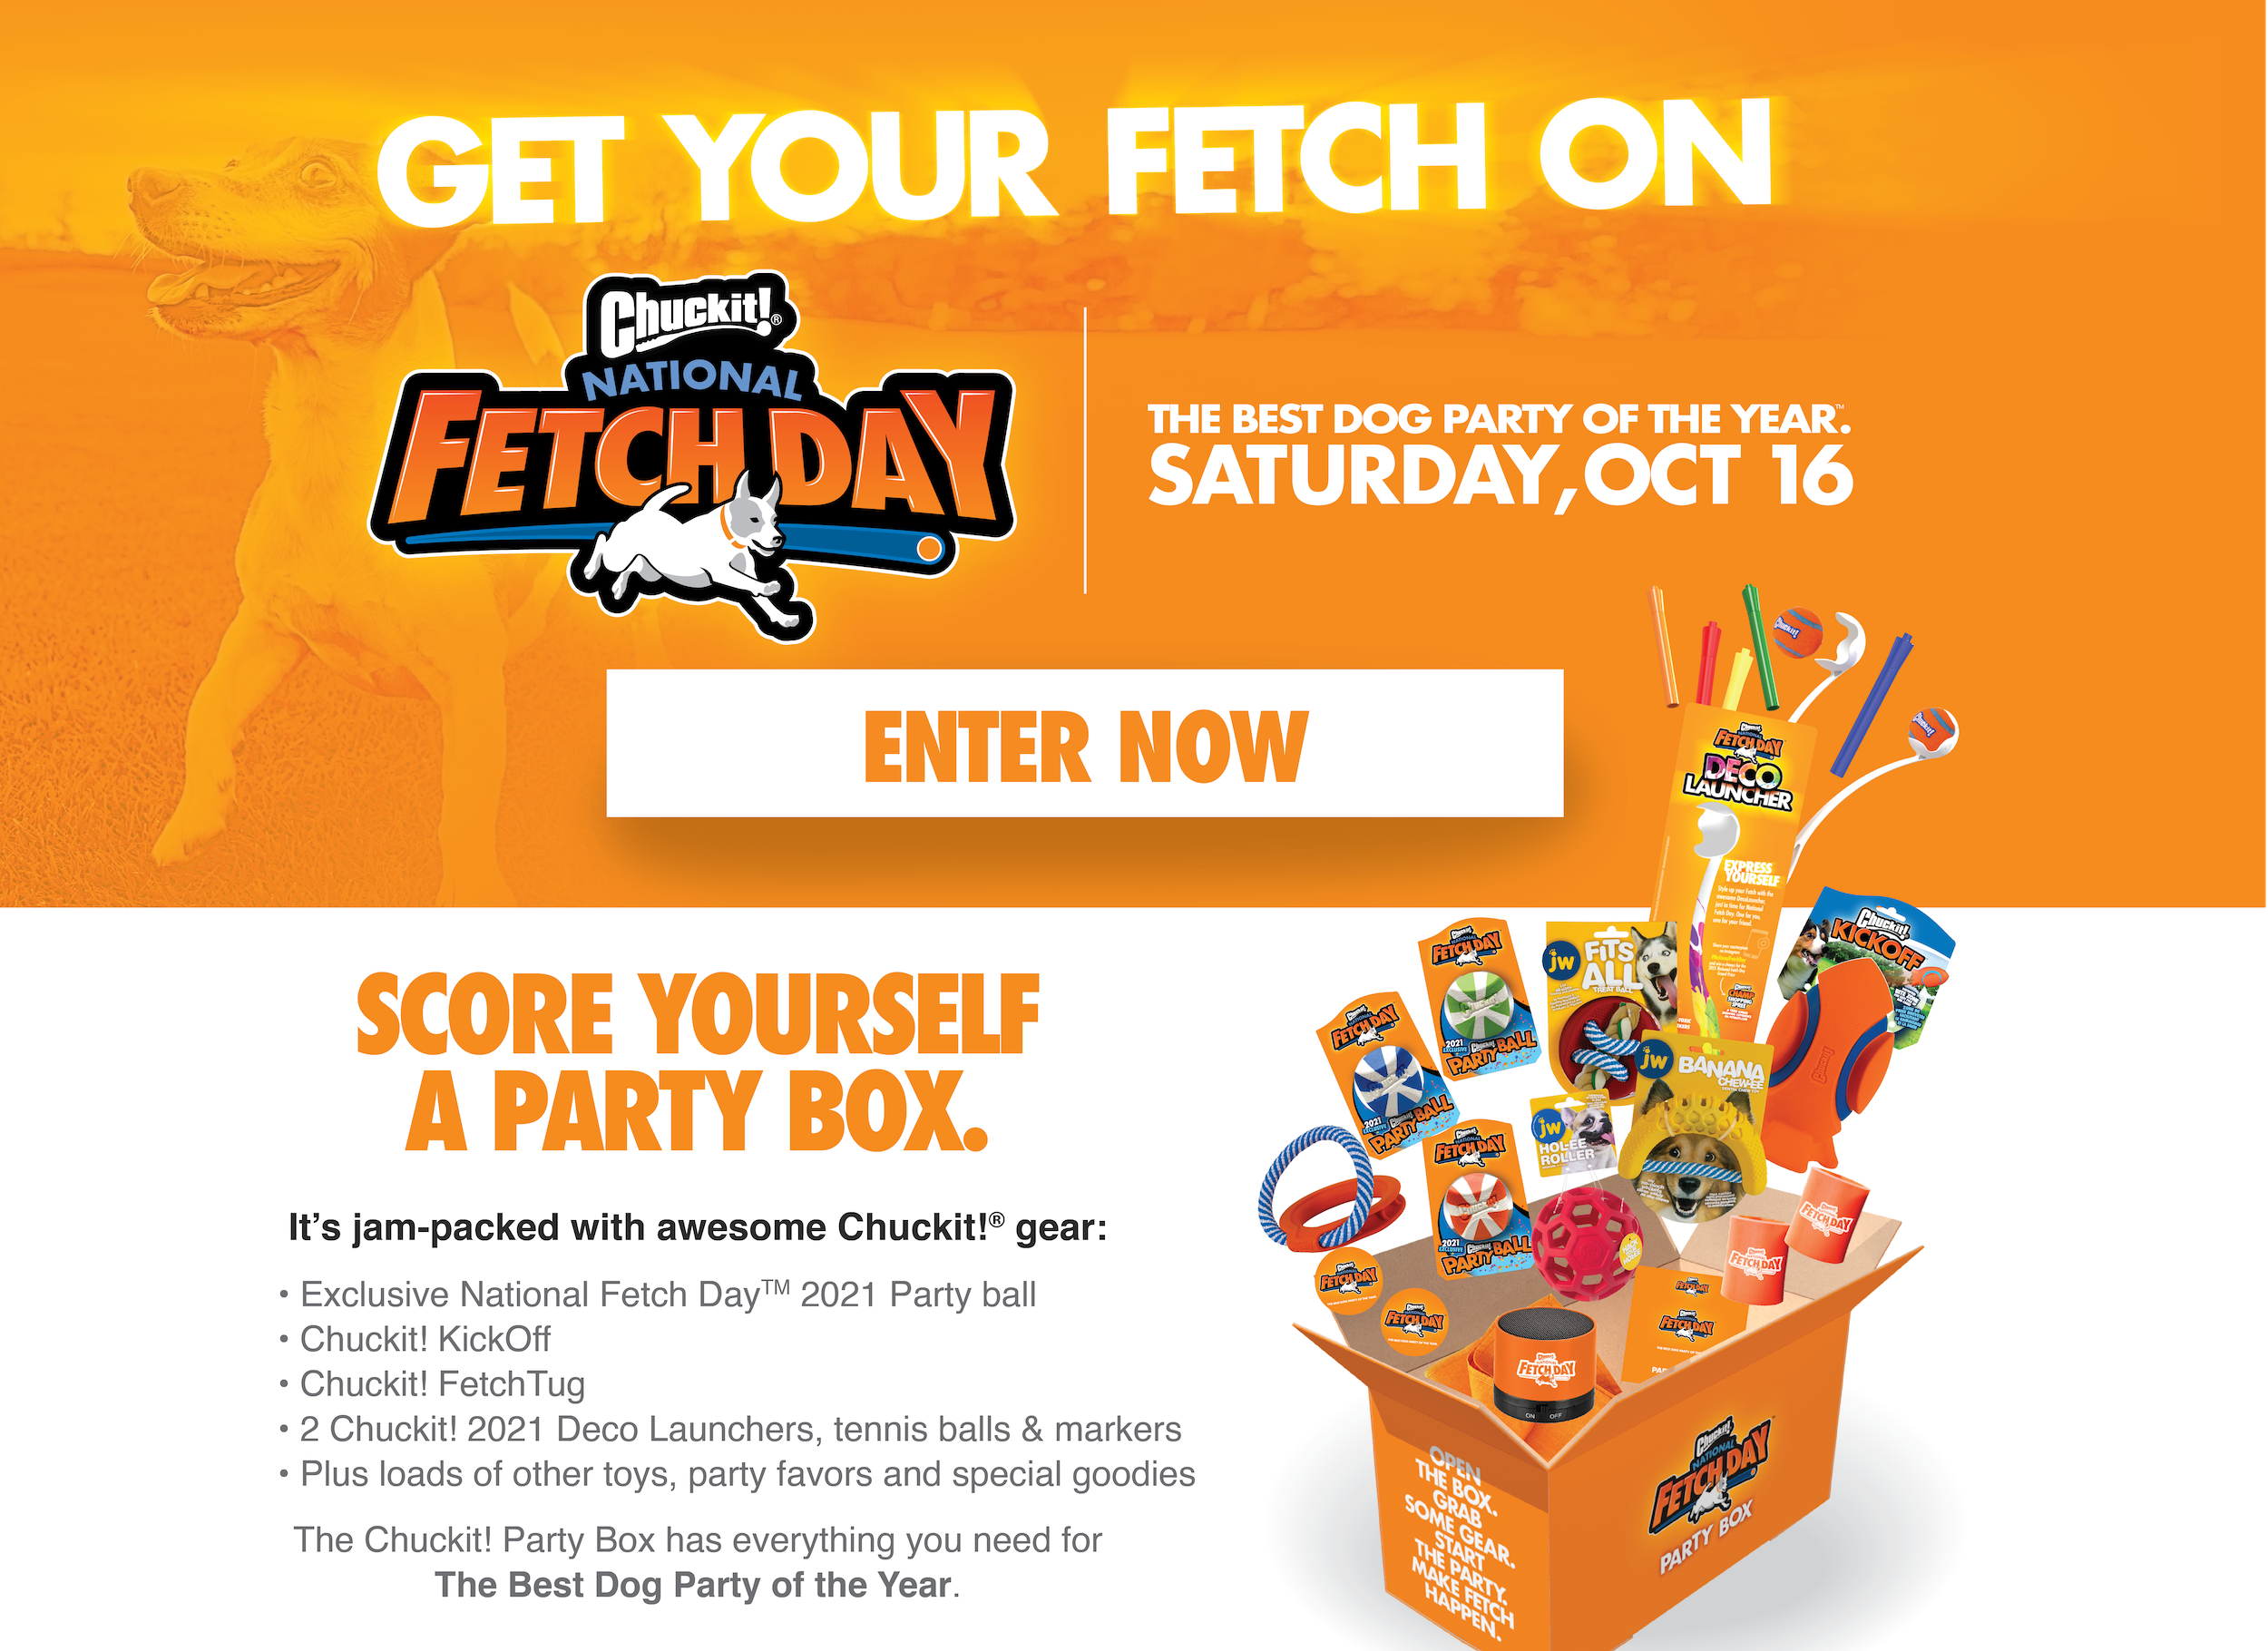 National Fetch Day Sweepstakes